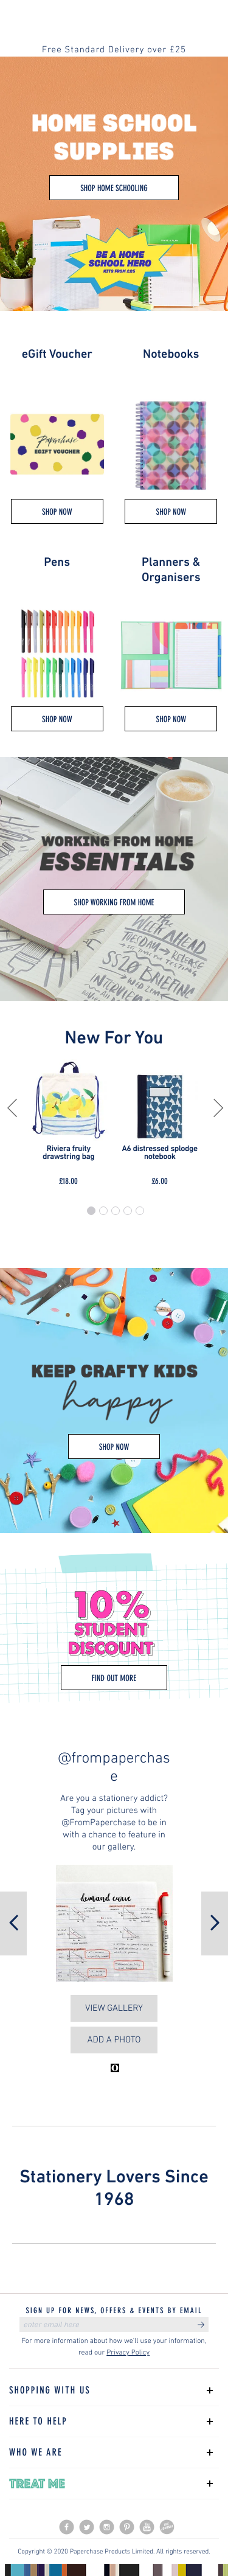 Paperchase Coupon